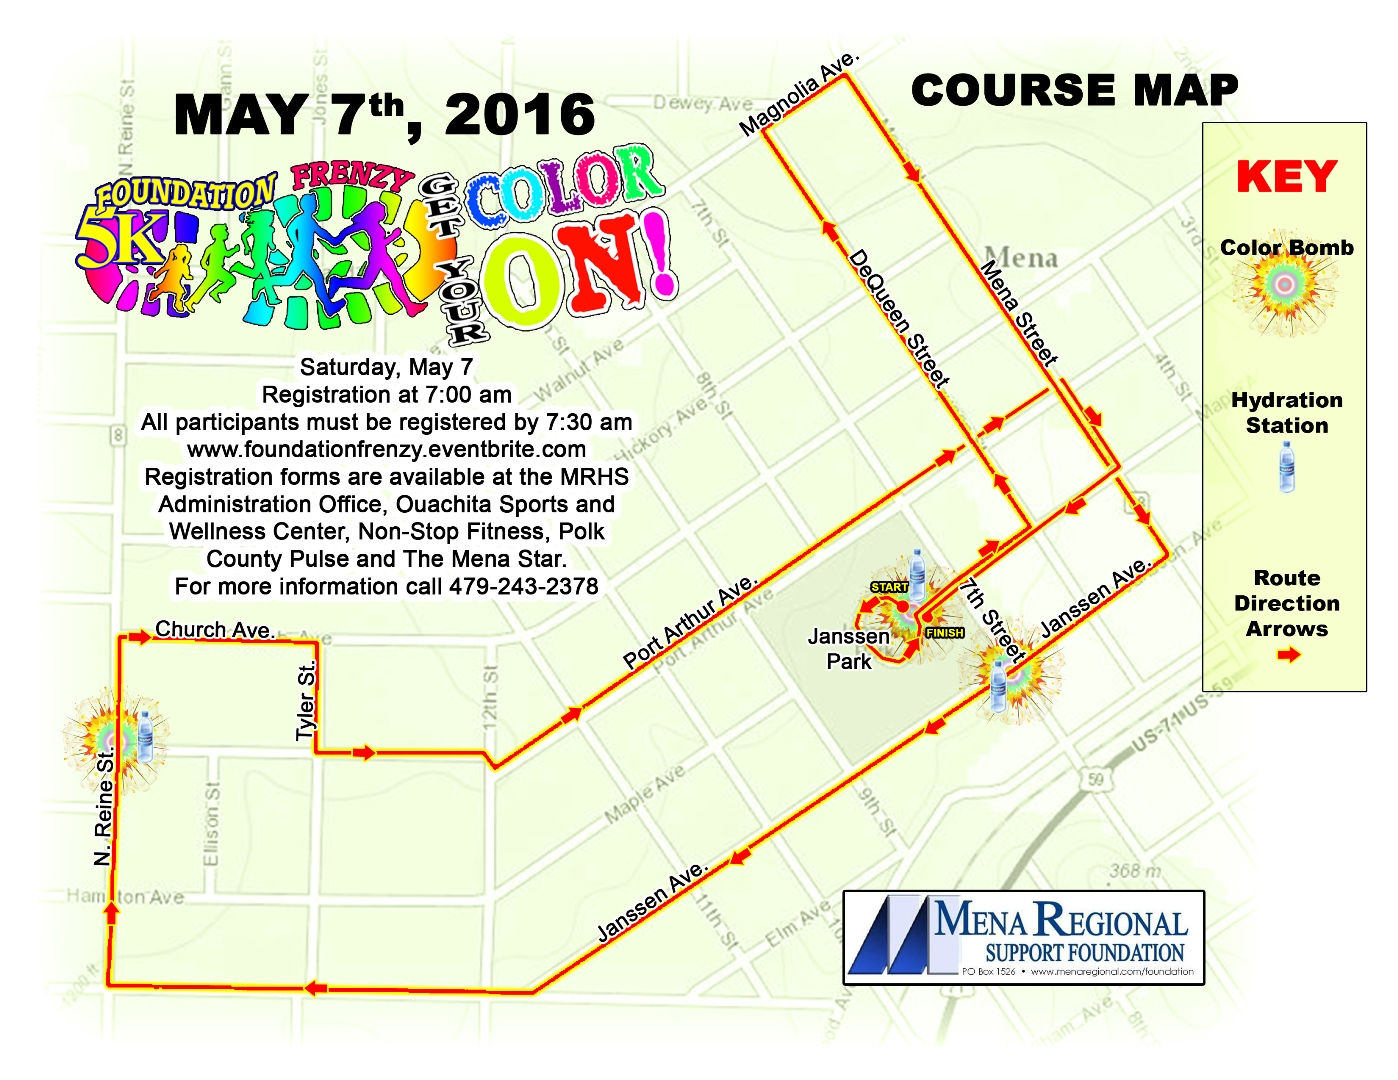 Foundation Frenzy 5K Family Color Run/Walk Route